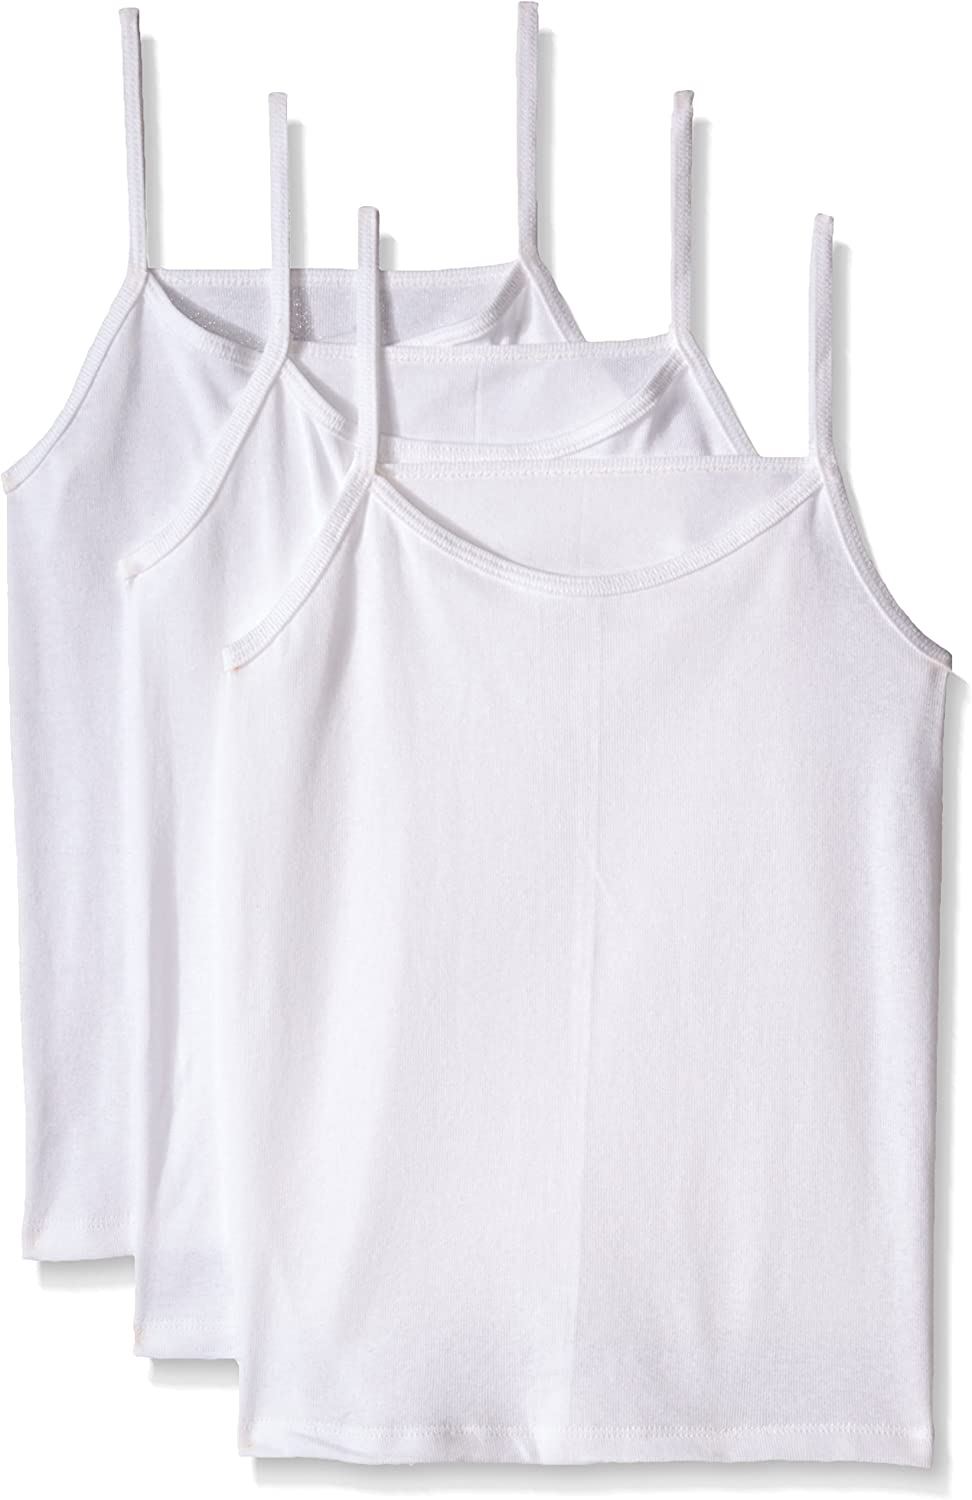 Fruit of the Loom Big Girls' White Cami (Pack of 3): Clothing